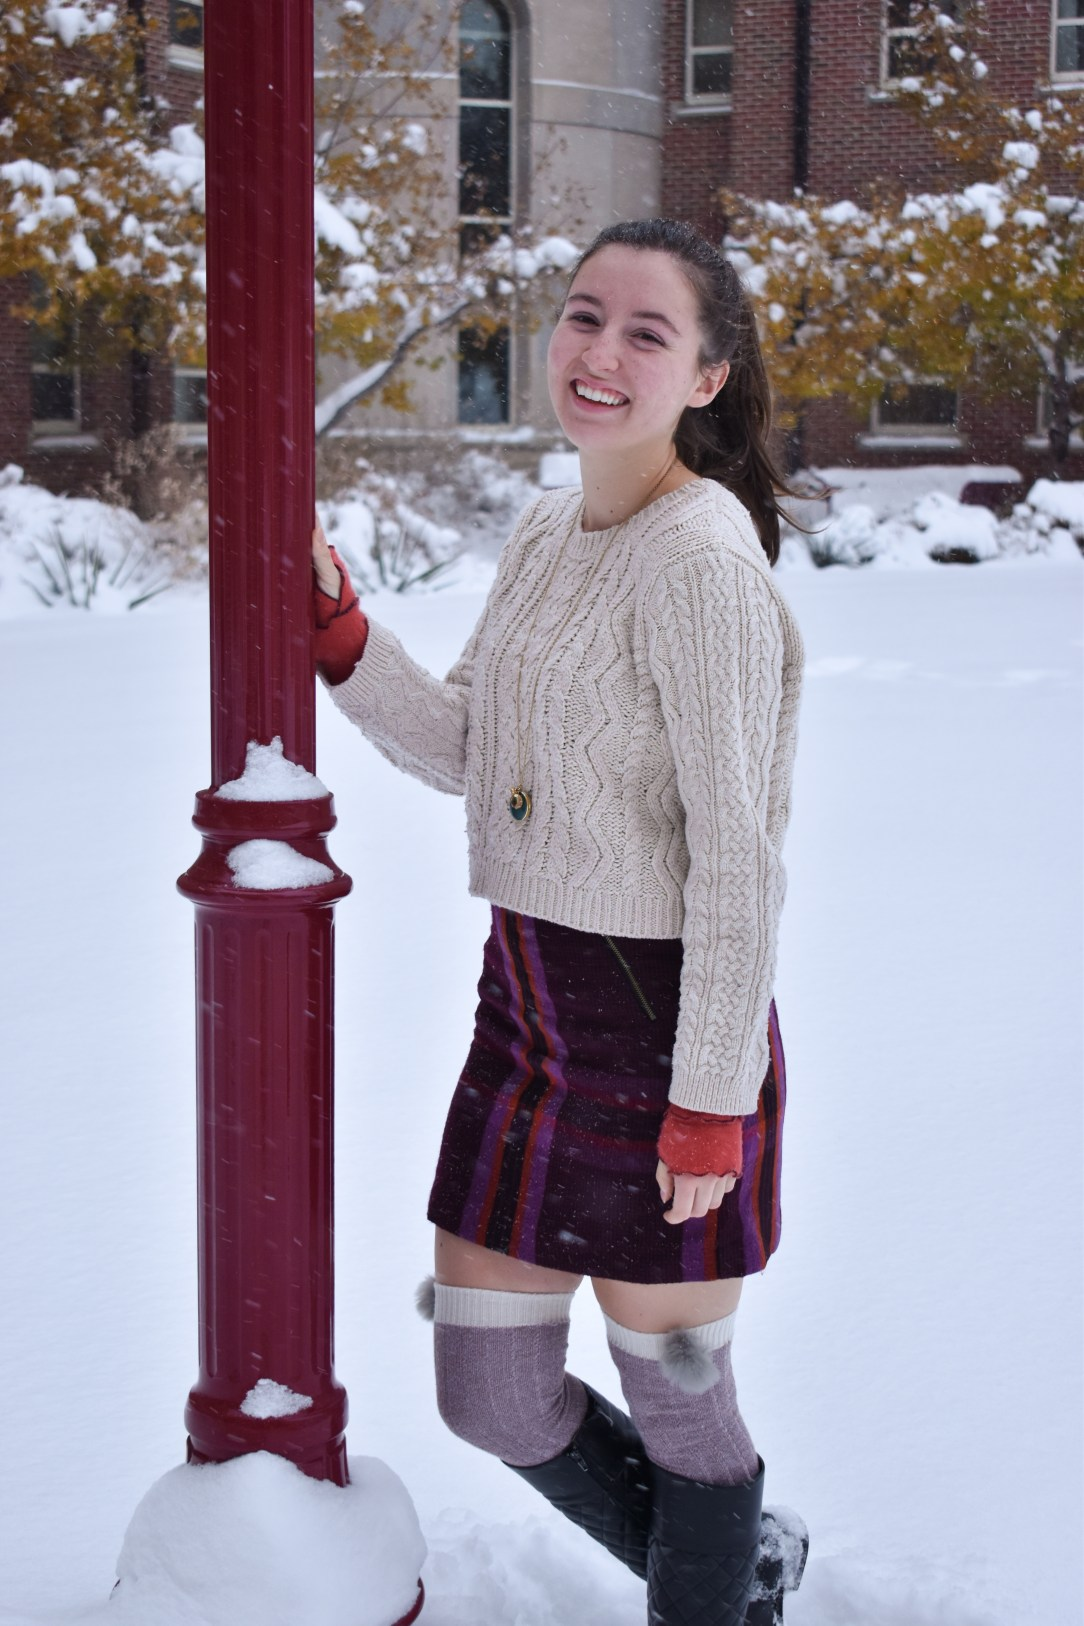 plaid skirt, knee socks, black riding boots, cableknit sweater